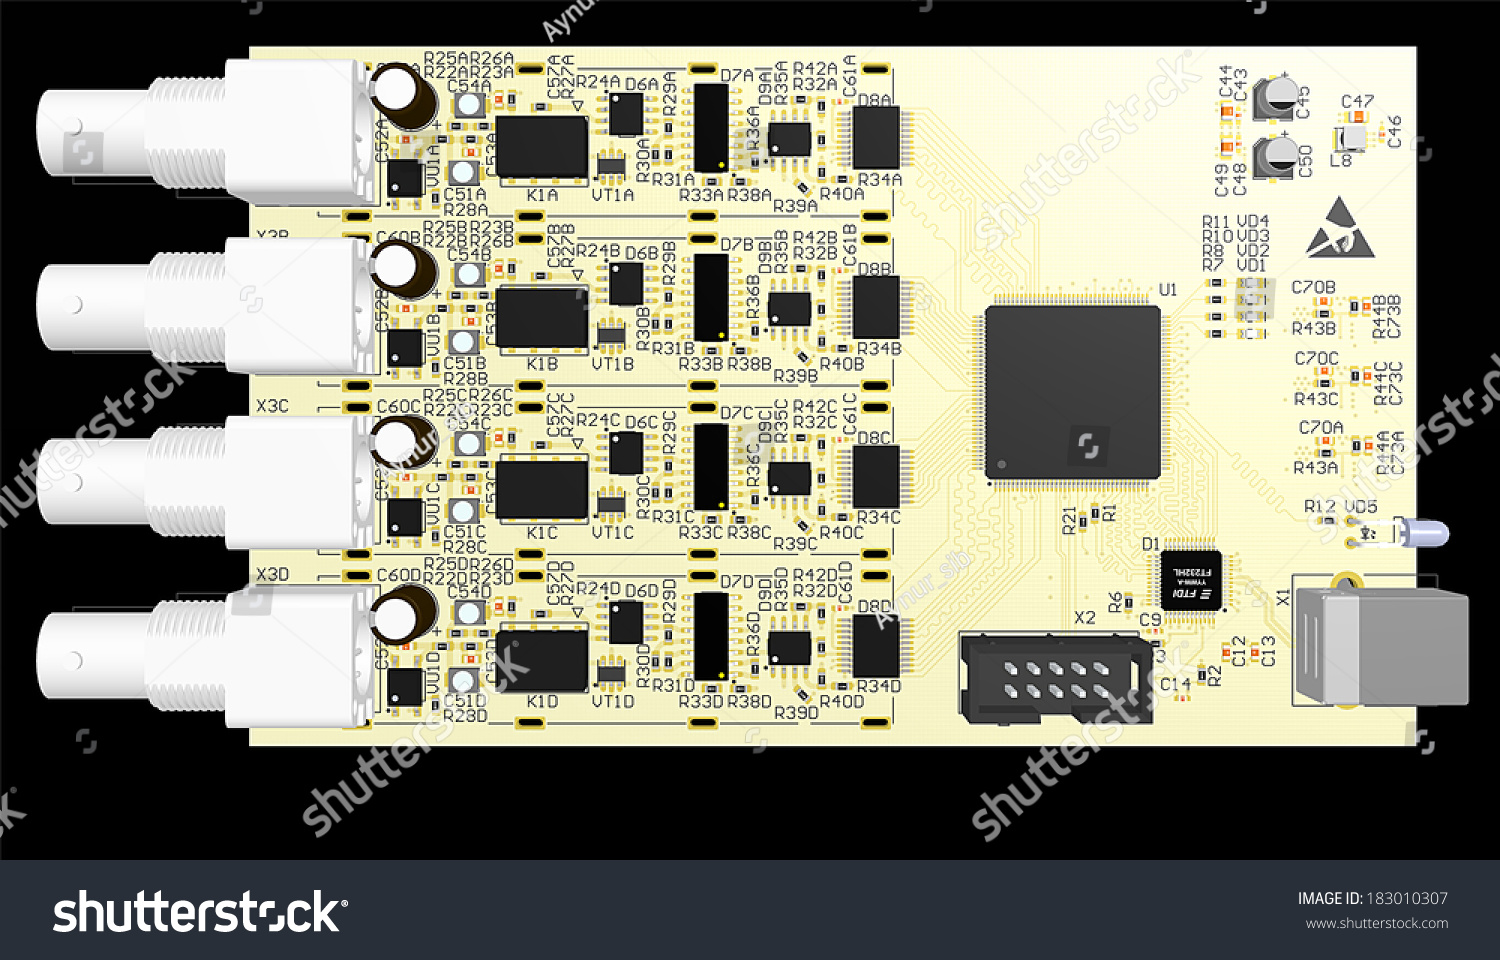 Top View Pcb Wiring Schemeprinted Circuit Stock Illustration Stockfoto Printed Board Used In Industrial Electronic Cad Designed For Computer Production Manufacturing Printing